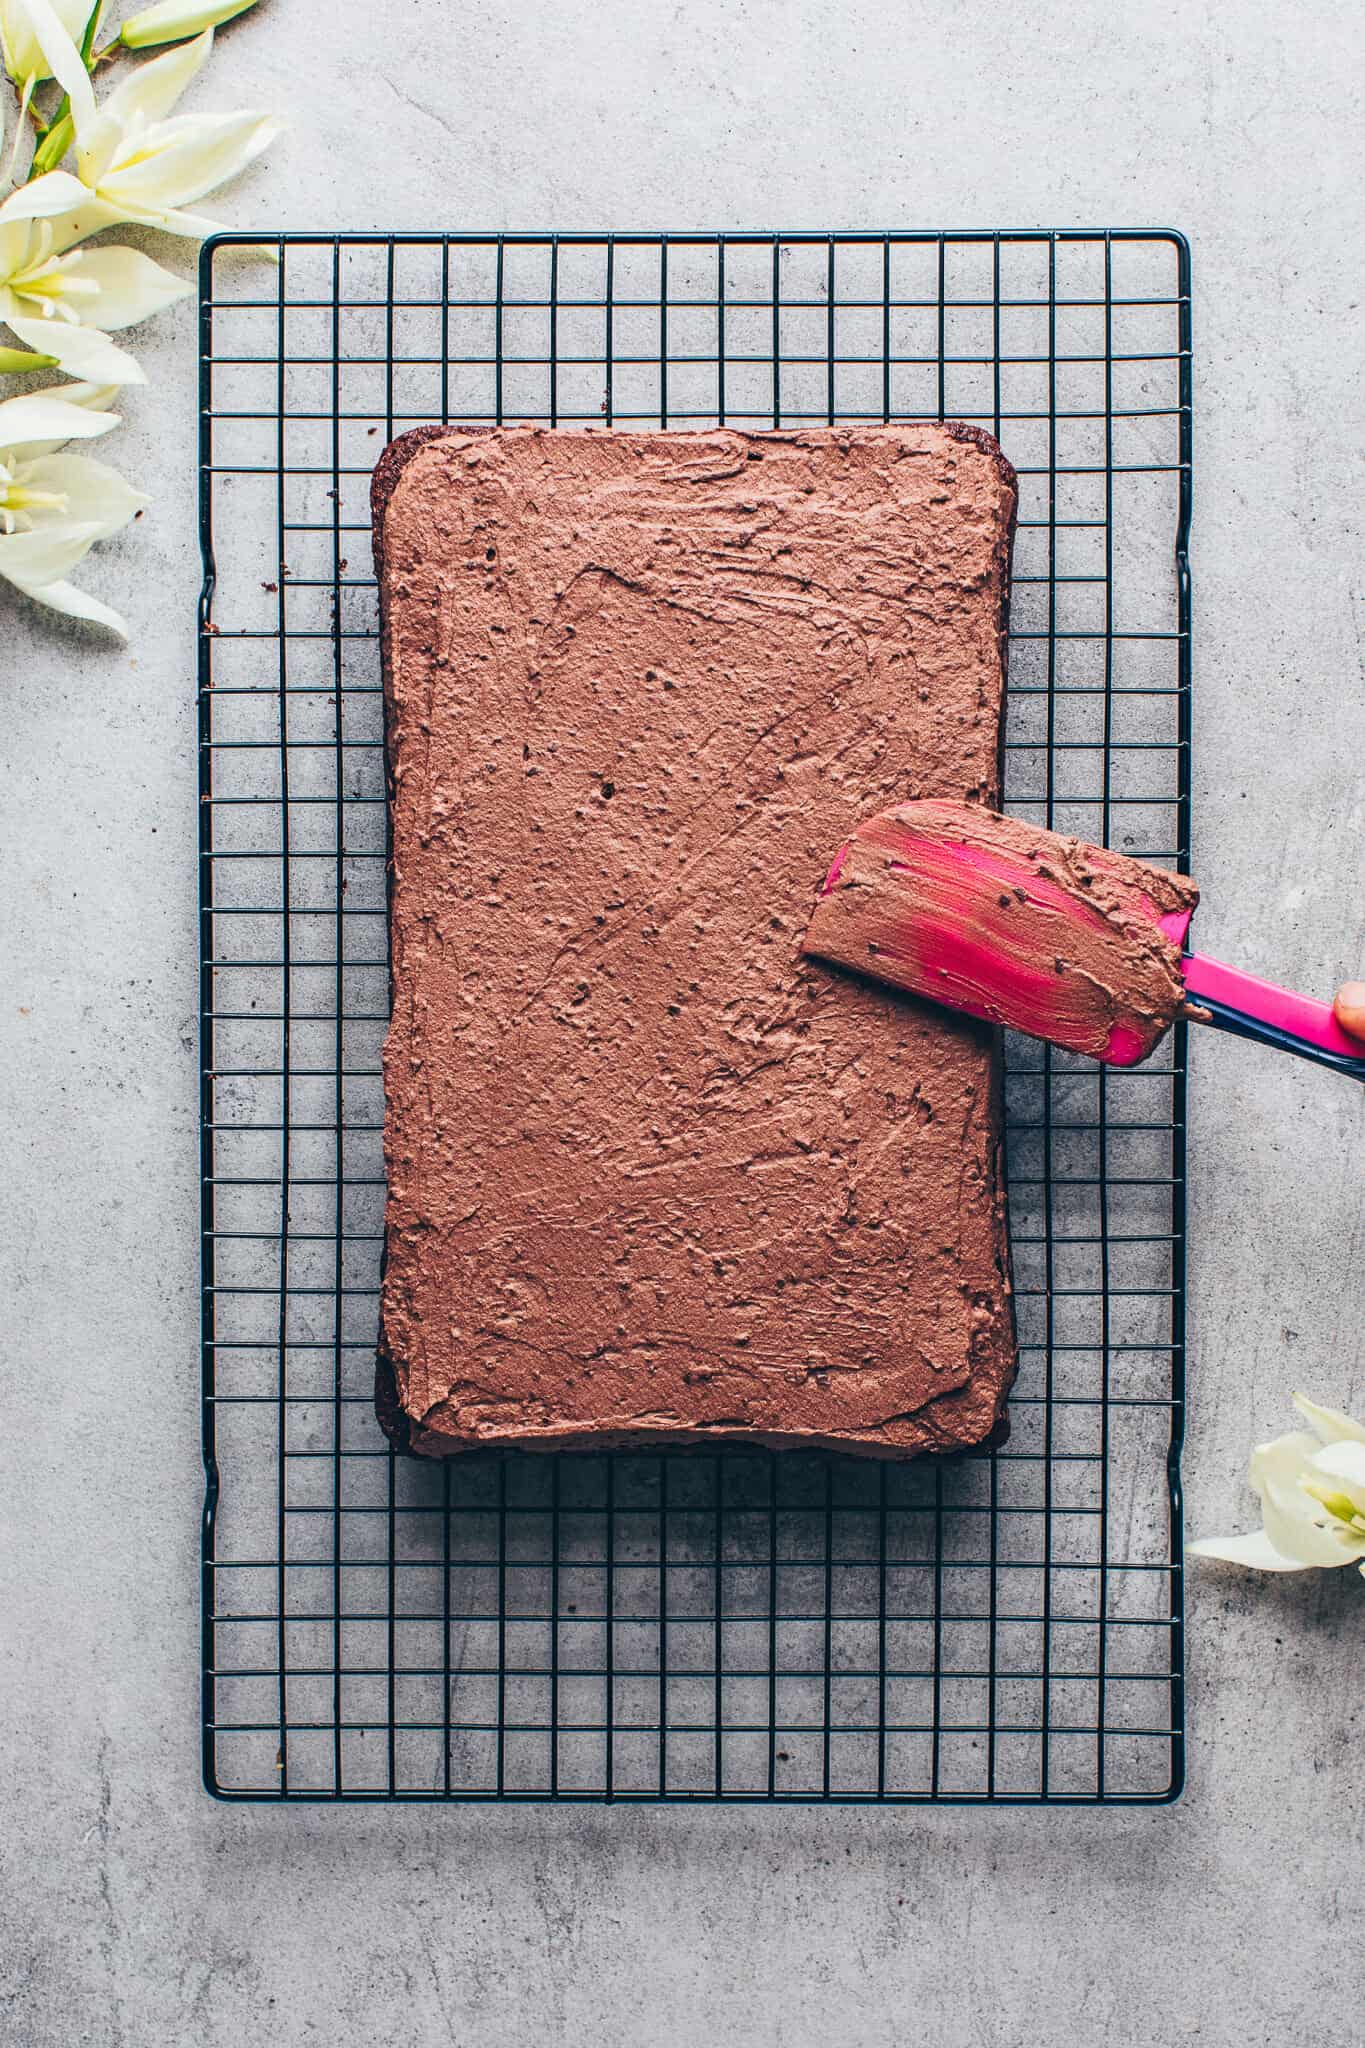 Chocolate cake. Moist, rich, delicious with chocolate frosting. Vegan sheet cake brownies